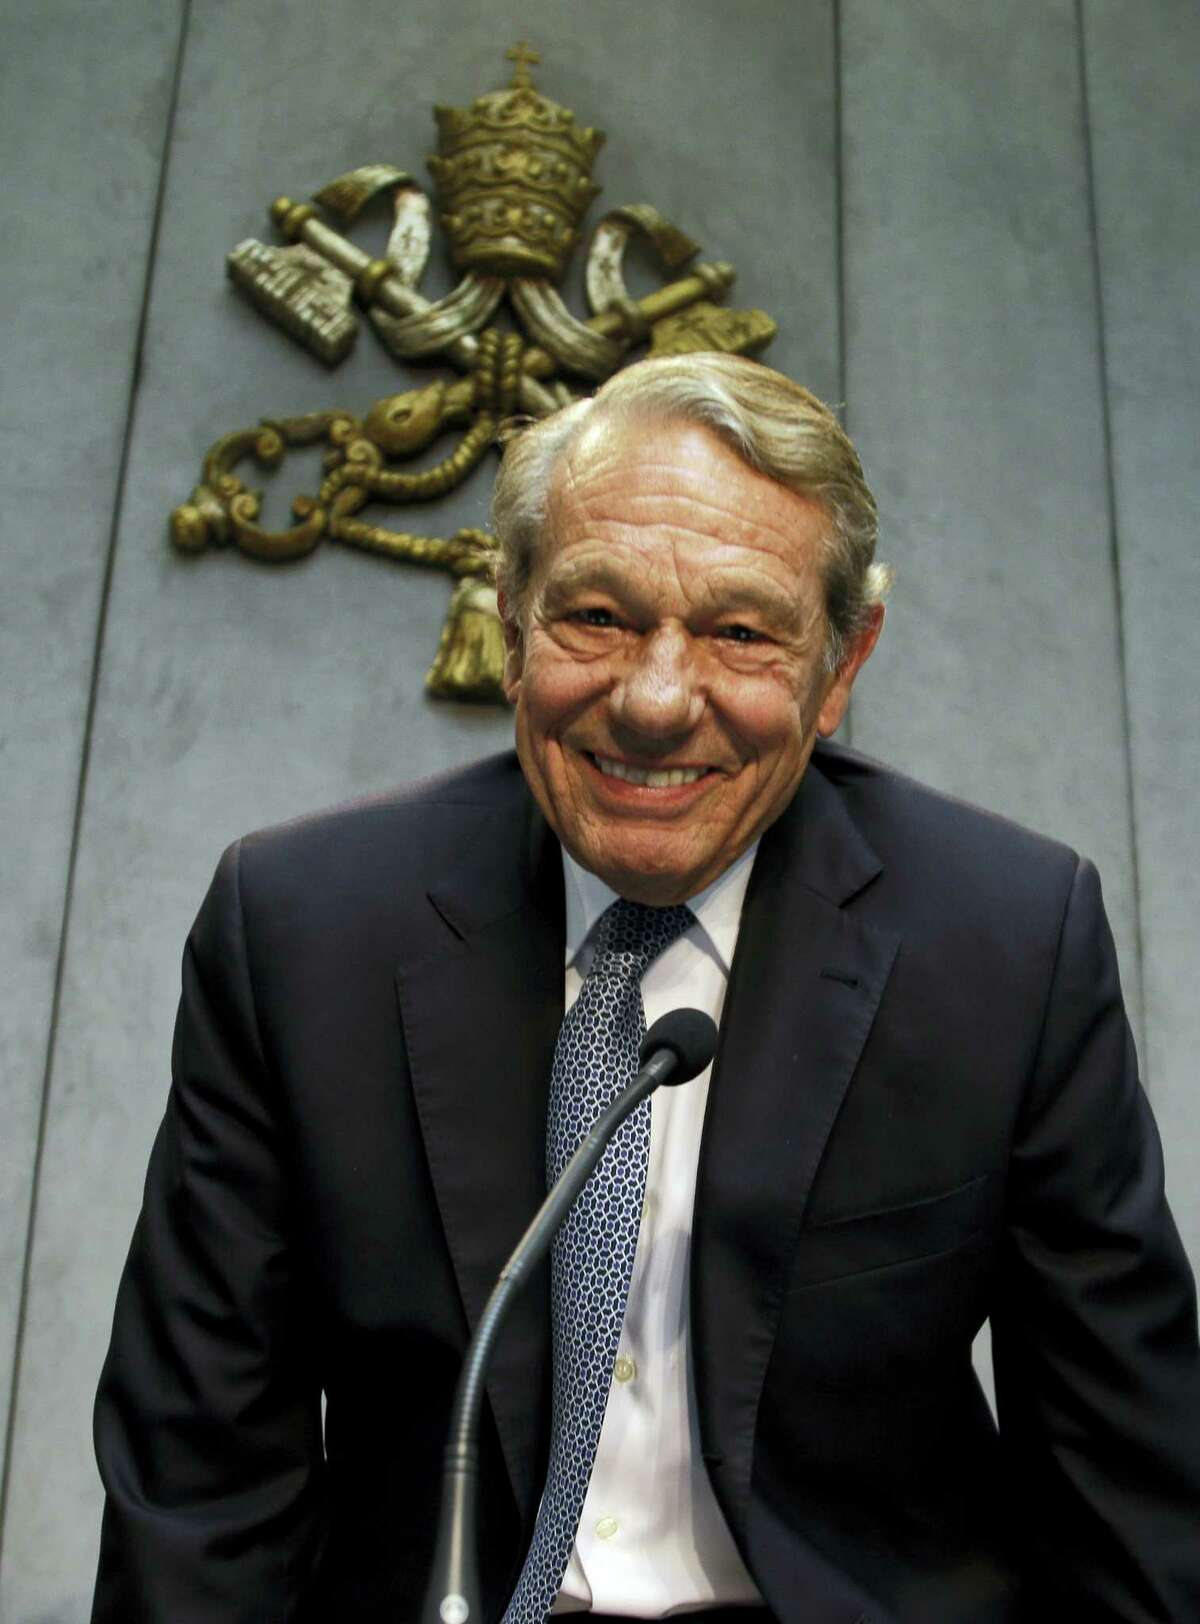 In this photo taken on April 25, 2014, former Pope John Paul II spokesperson Joaquin Navarro-Valls smiles prior to the start of a press conference at the Vatican. Joaquin Navarro-Valls, a suave, silver-haired Spaniard who was a close confidant of Pope John Paul II, serving for more than two decades as chief Vatican spokesman, has died at the age of 80, Wednesday, July 5, 2017.